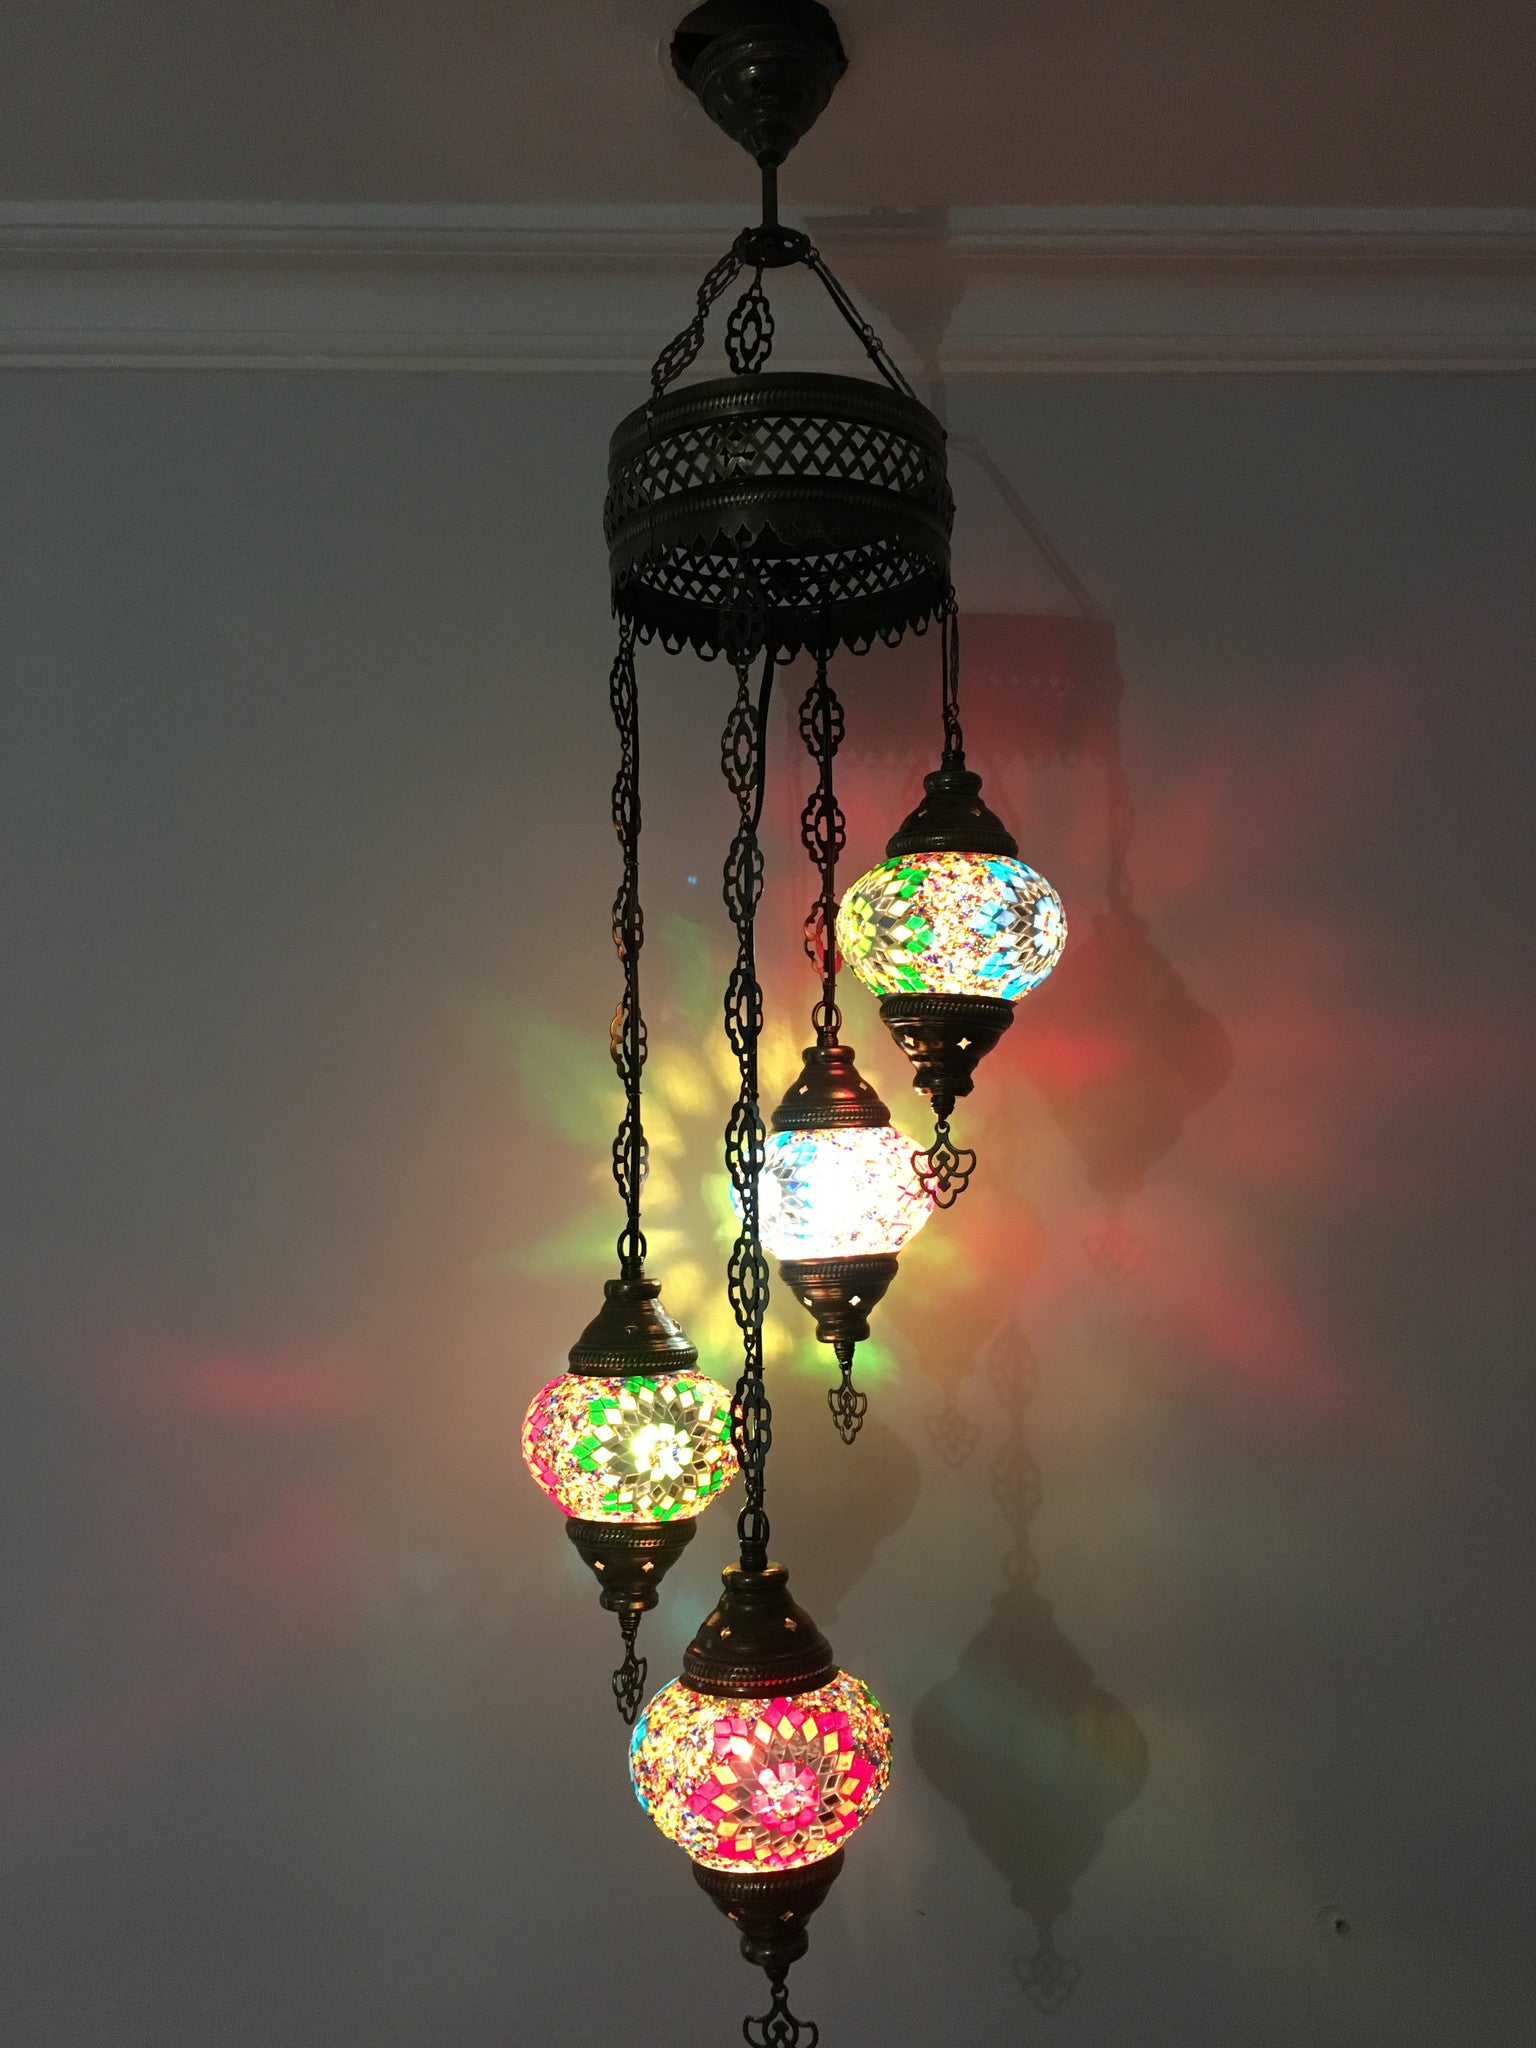 4 BALL TURKISH MOSAIC CHANDELIER – TurkishLights NET